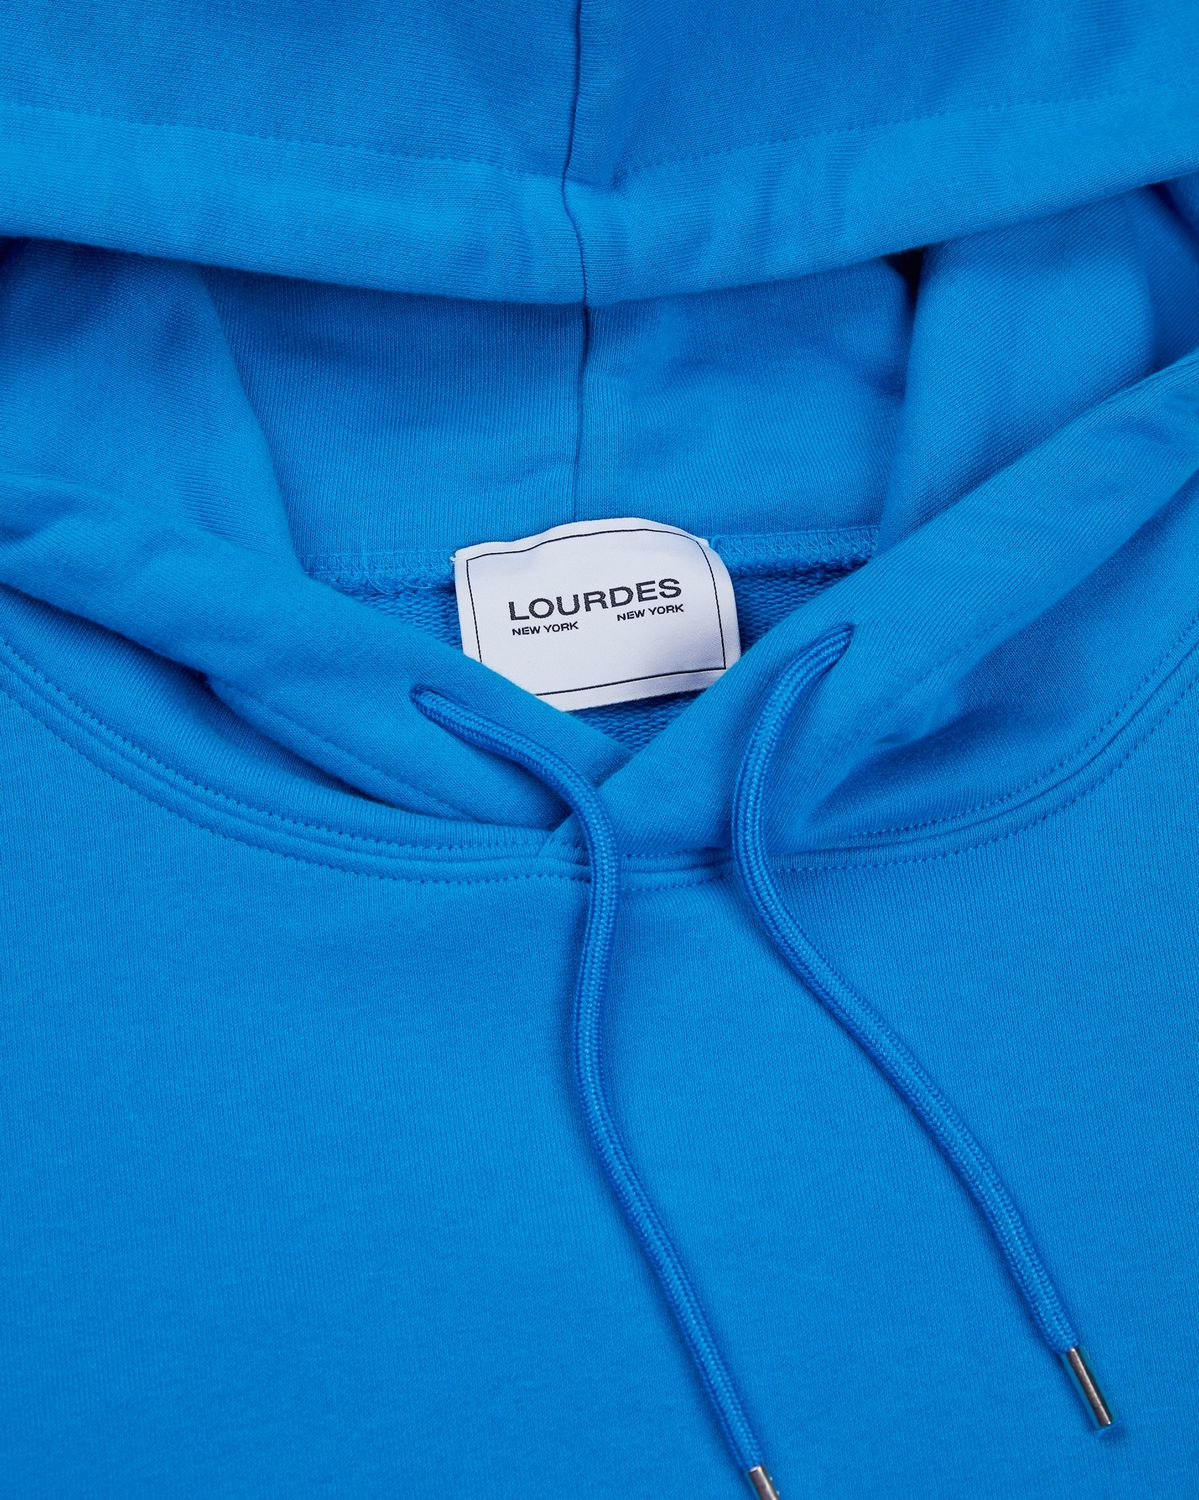 Lourdes NYC - Fawn Hoodie - Blue - Image 3